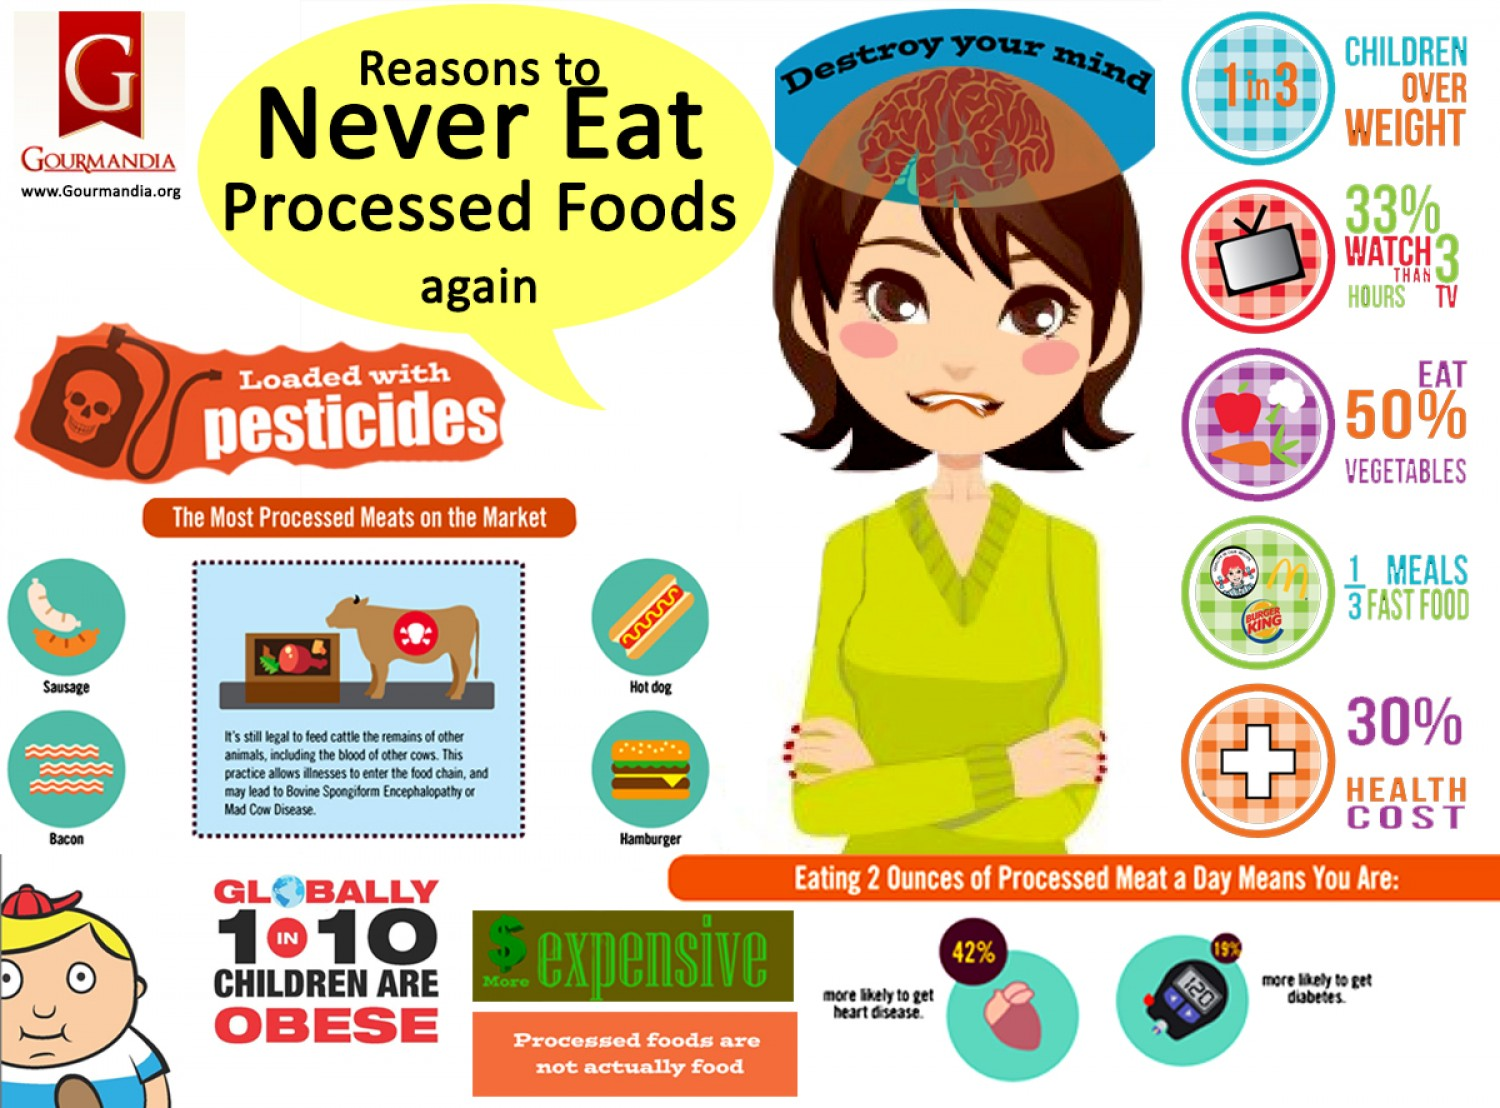 reasons-to-never-eat-processed-foods-again_51cabbf0377b3_w1500